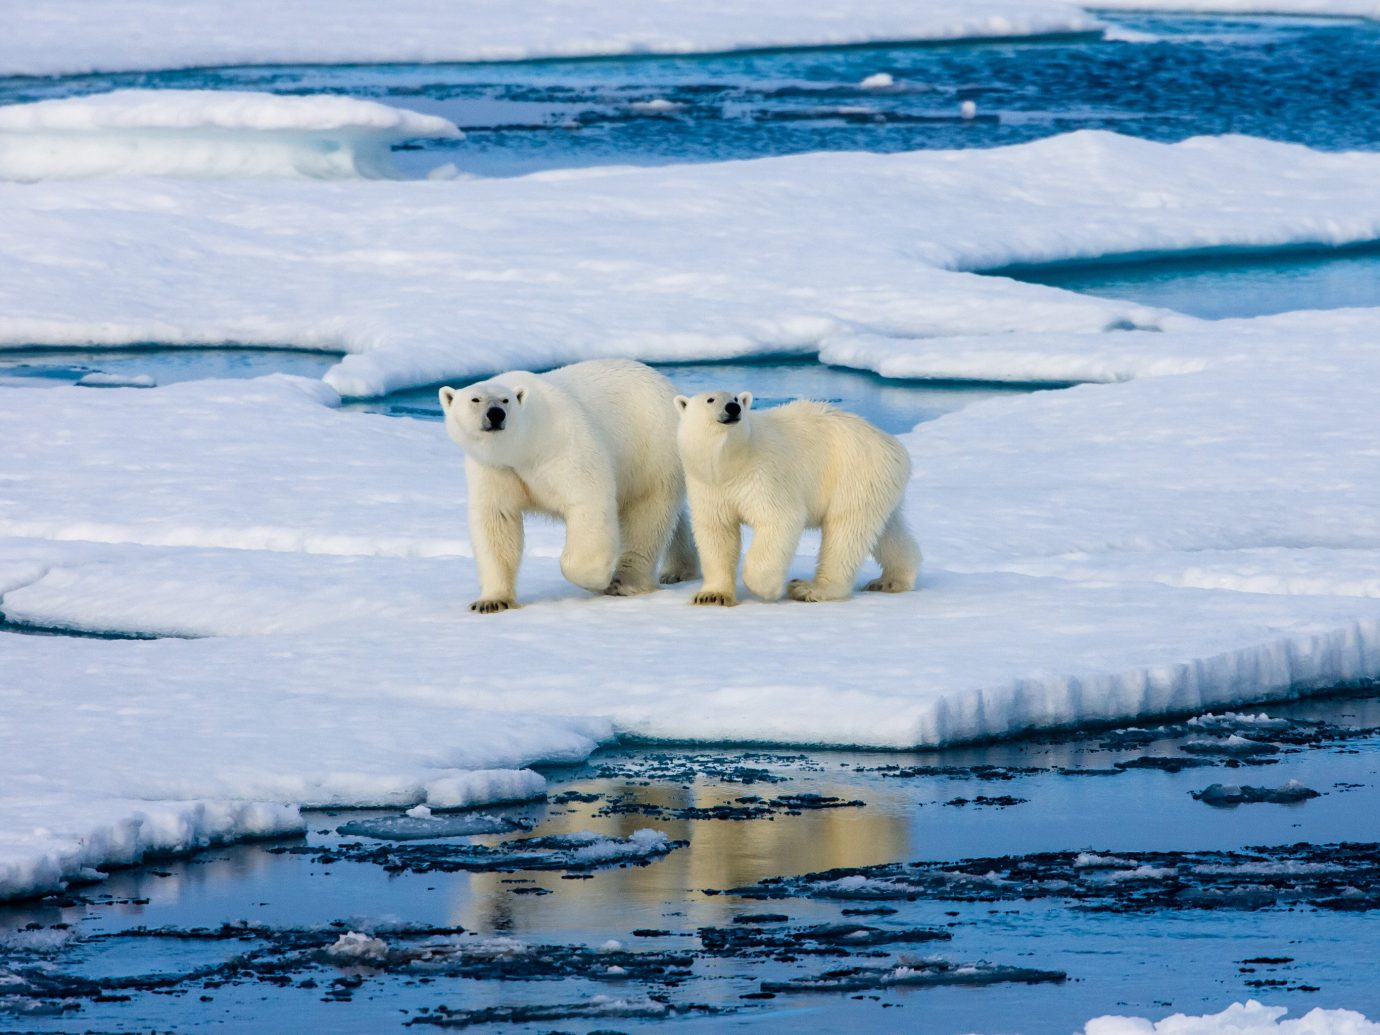 Adventure Trip Ideas water polar outdoor polar bear arctic ocean animal arctic bear mammal polar ice cap ice ice cap melting tundra Wildlife carnivoran sea ice Ocean freezing glacial landform swimming